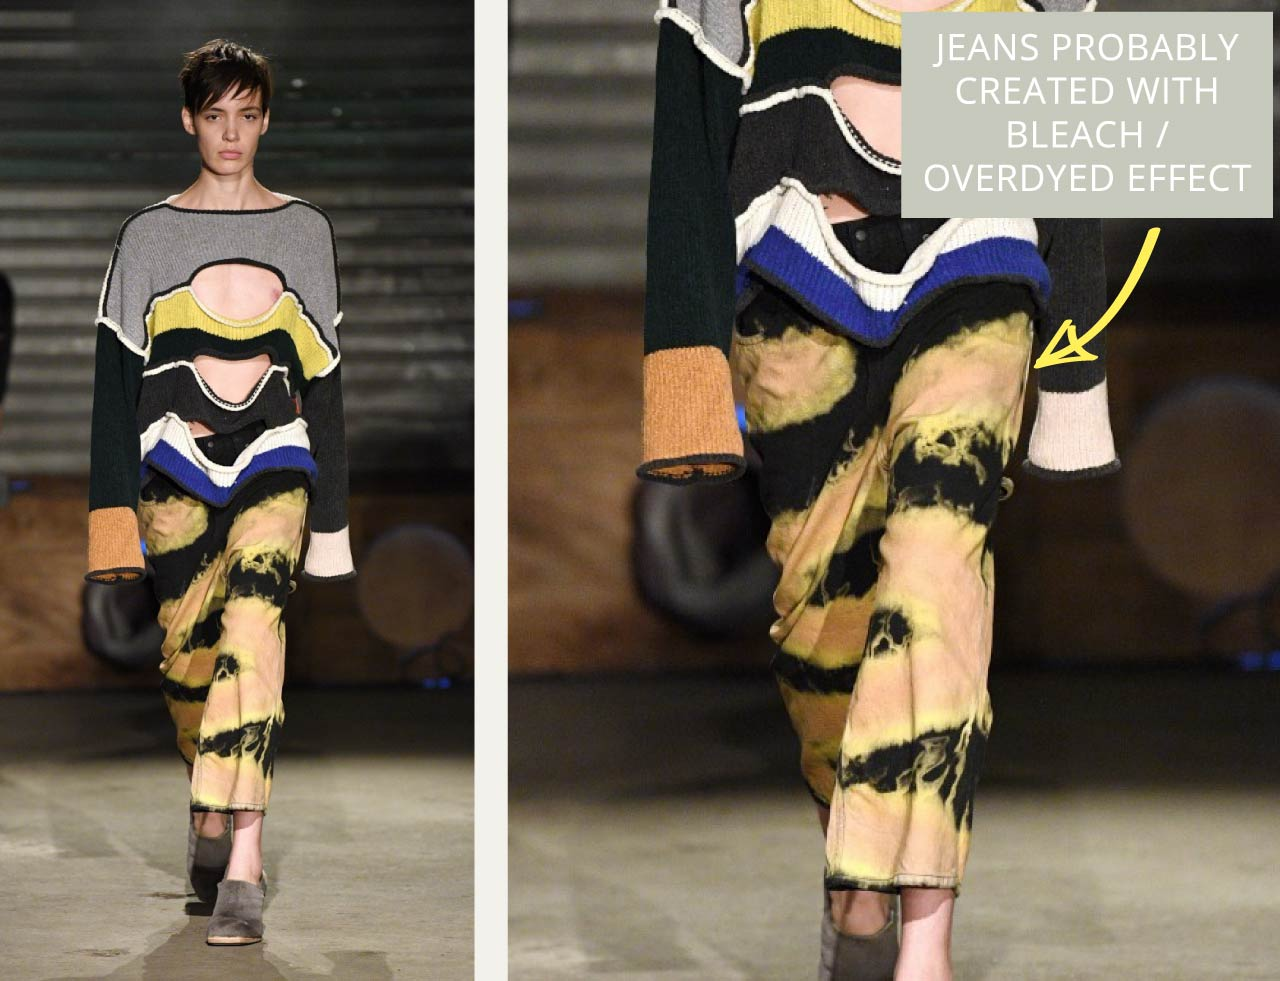 Bleached Jeans at Eckhaus Latta | The Cutting Class. AW19. Black jeans with zigzag bleack effect, possibly overdyed.